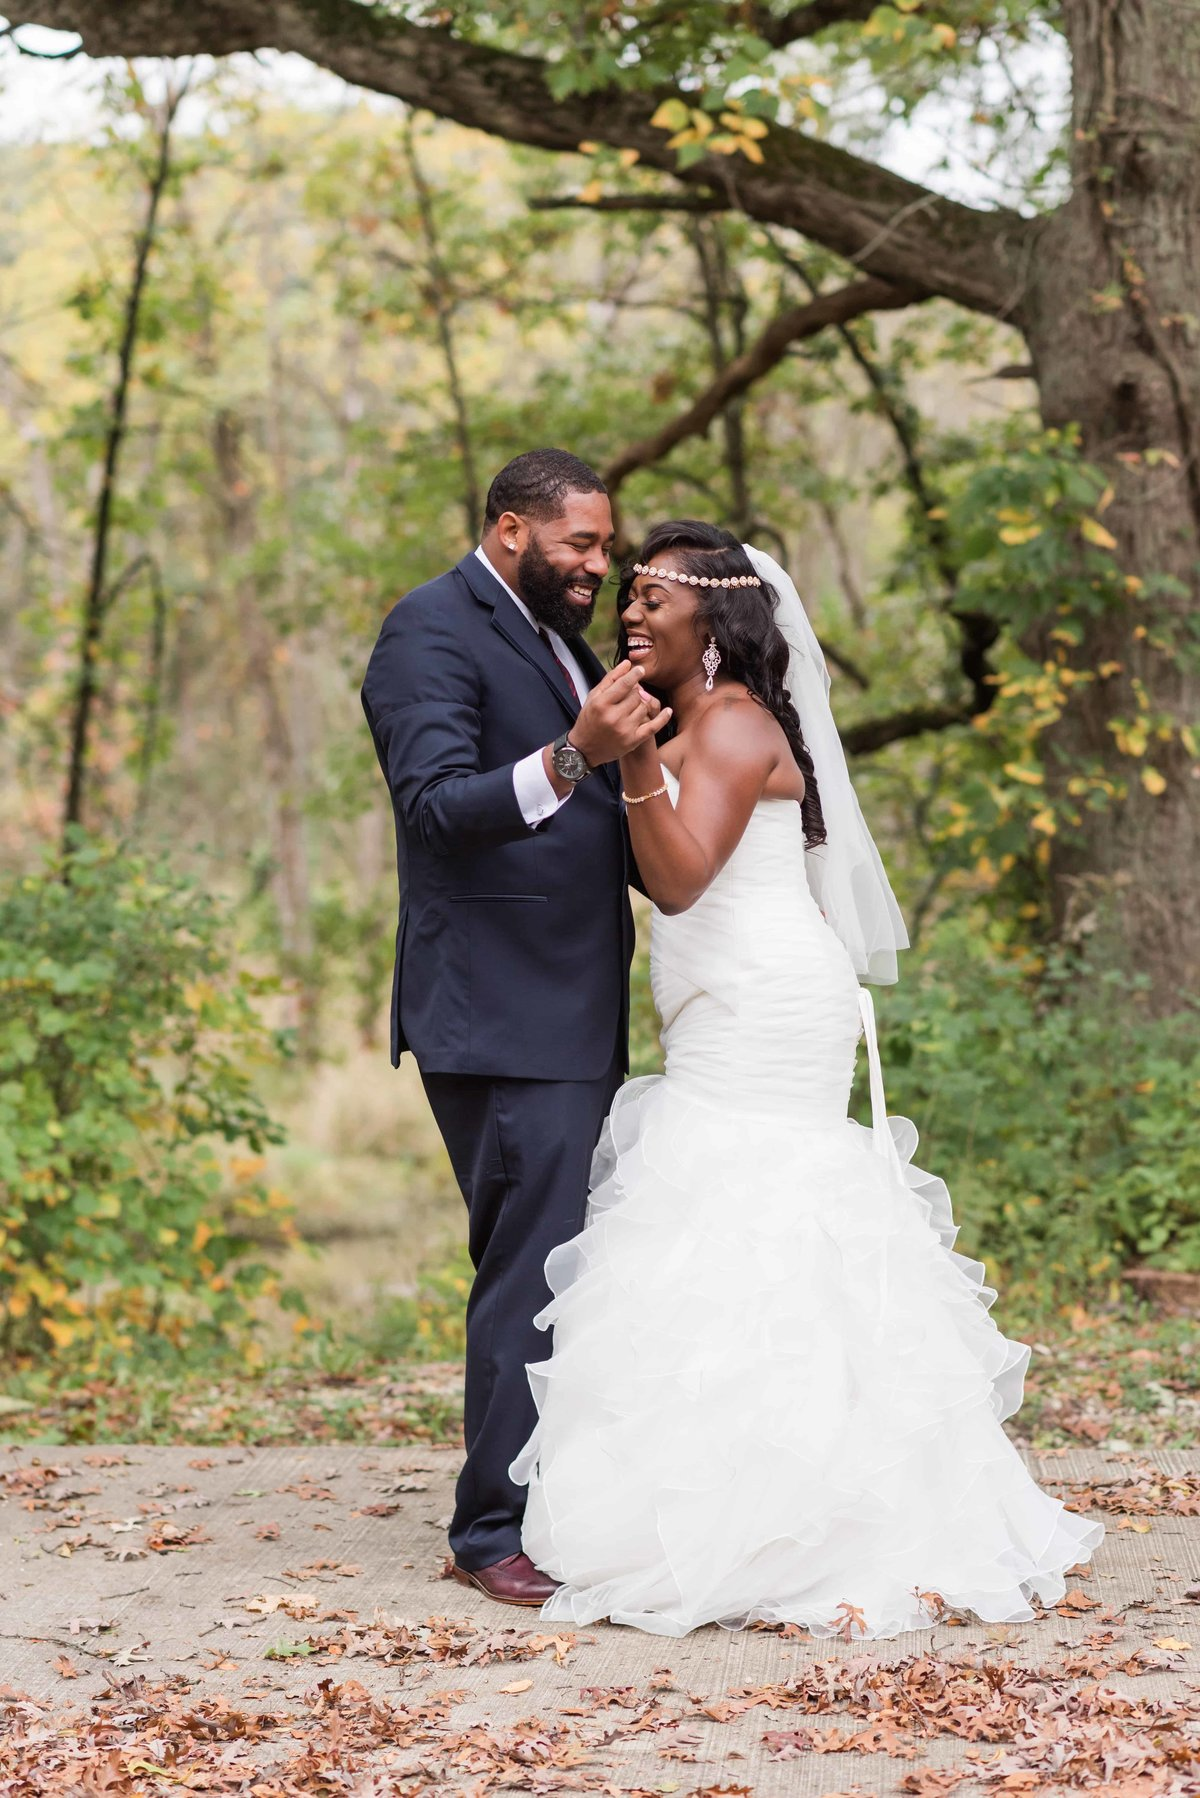 Black wedding couple dancing and laughing during portrait time.